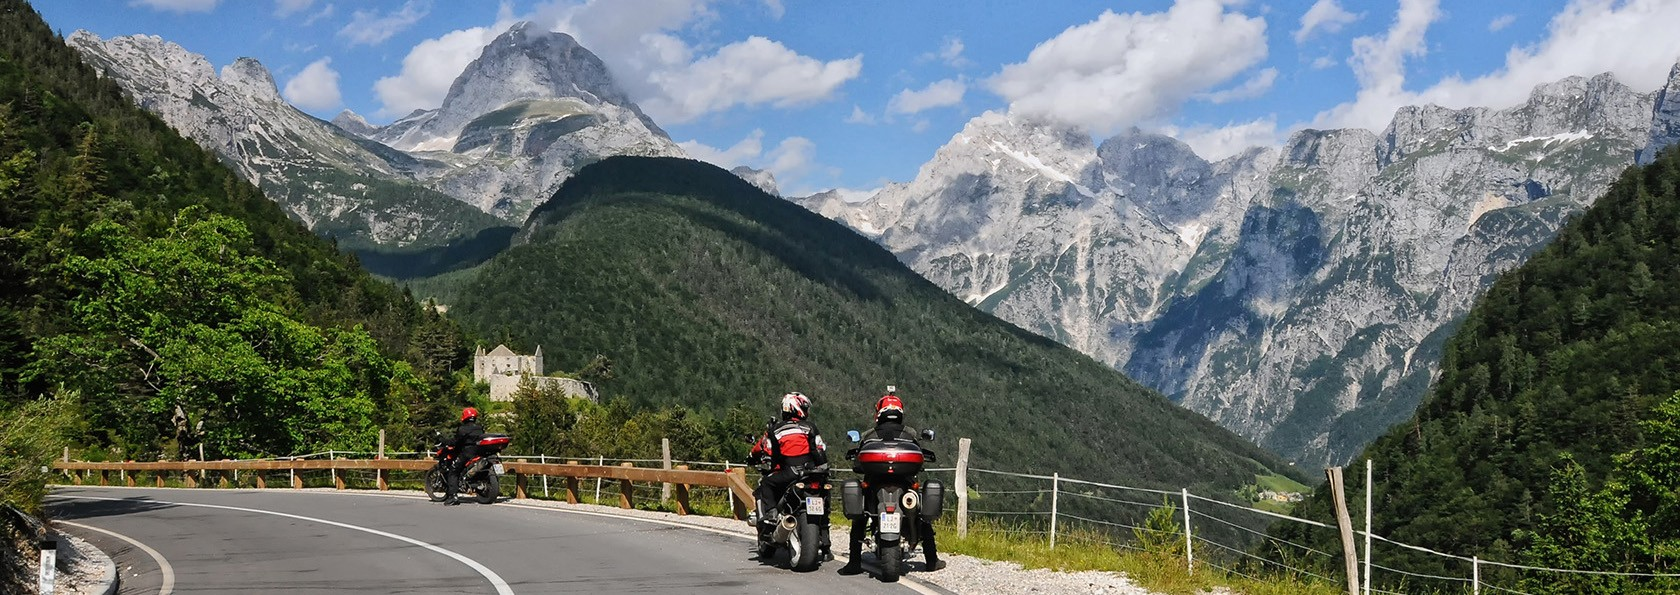 SLOVENIA & DOLOMITES self-guided tour